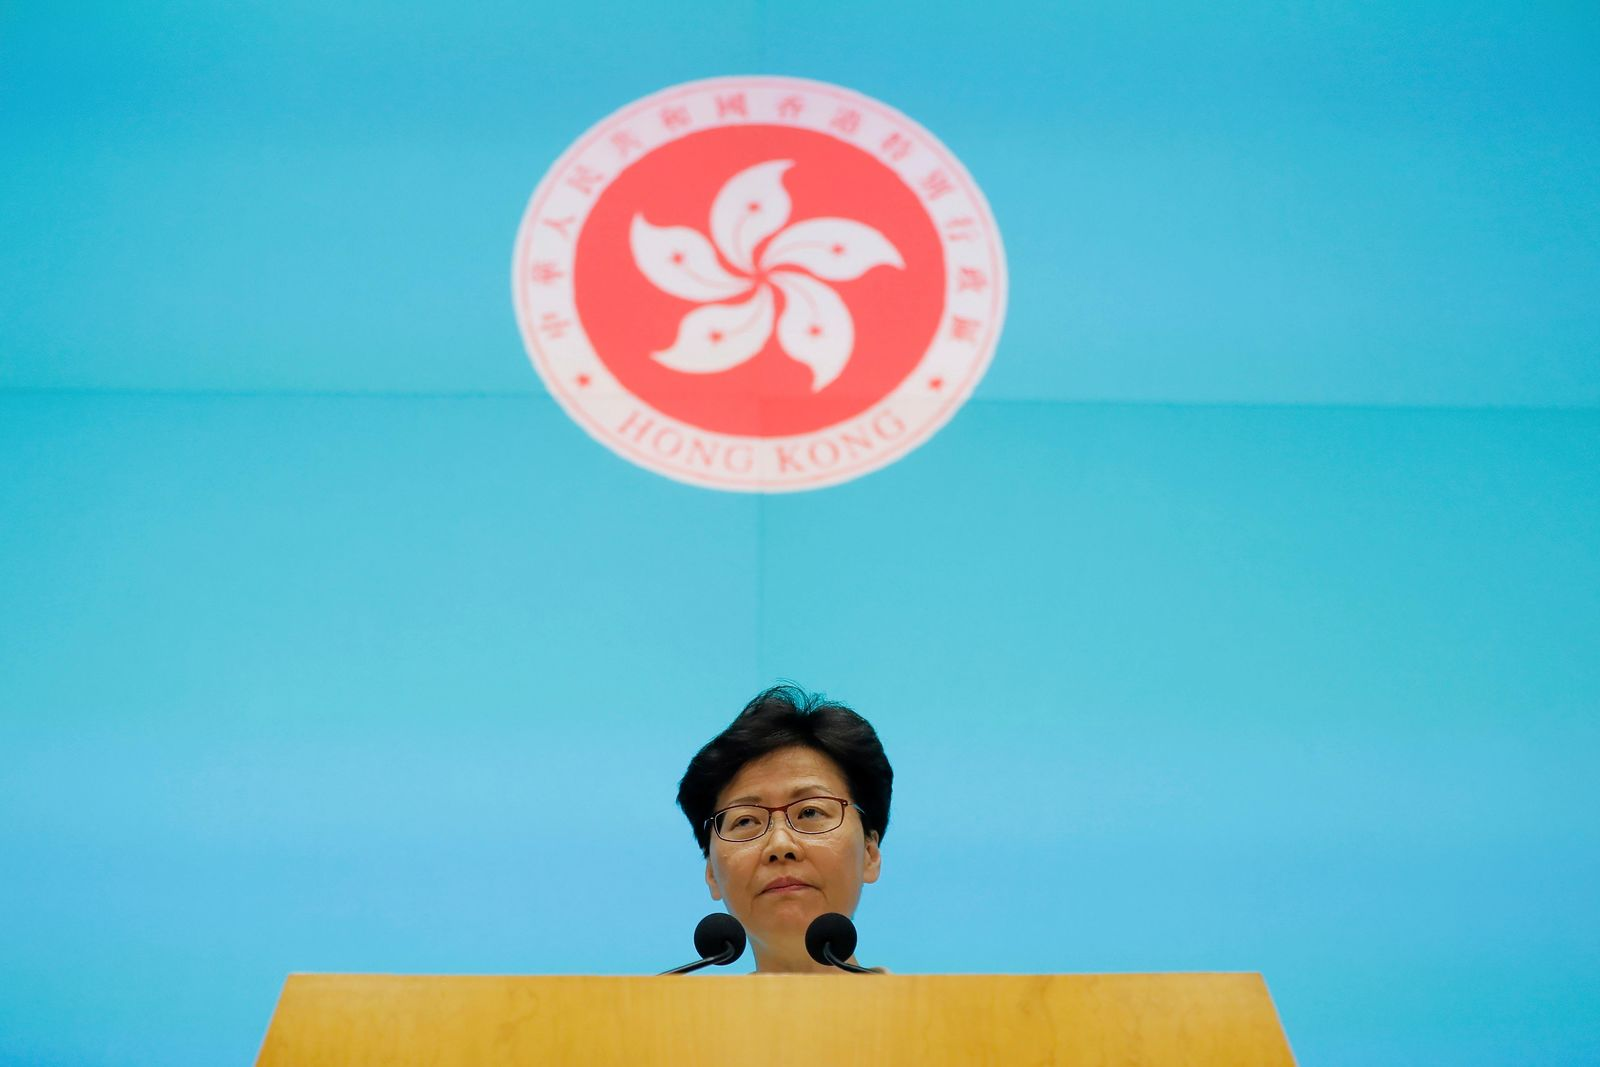 Hong Kong Chief Executive Carrie Lam pauses as she speaks during a press conference at the Legislative Council in Hong Kong, Tuesday, June 18, 2019. Hong Kong leader apologizes for her handling of unpopular extradition bill, says the city needs hope. (AP Photo/Kin Cheung)